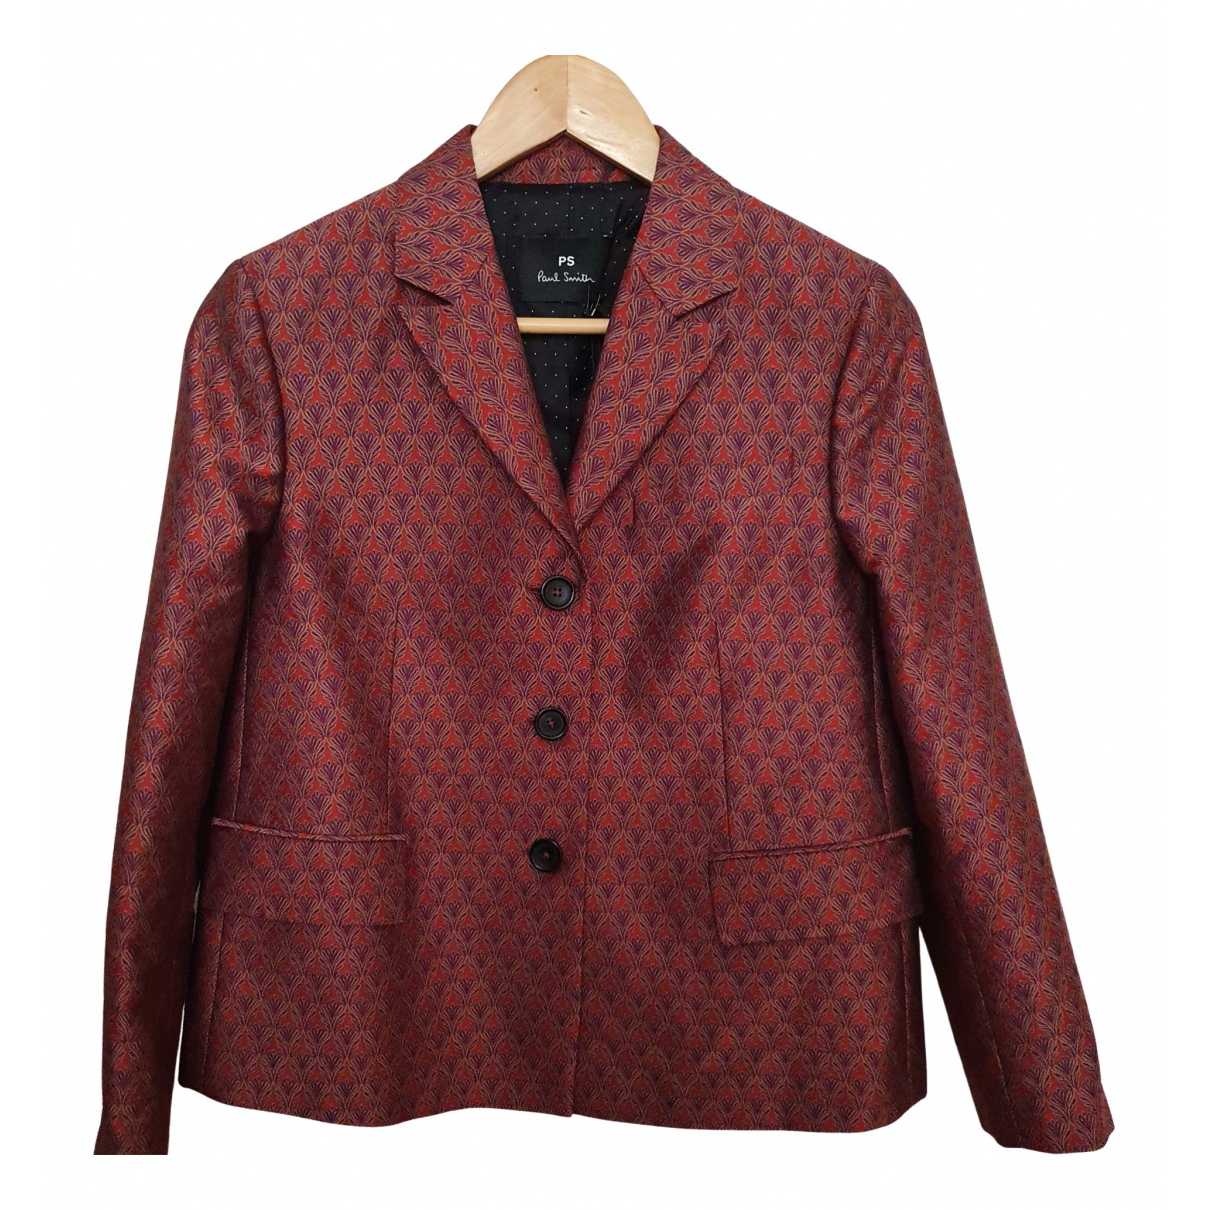 Paul Smith \N jacket for Women 38 IT